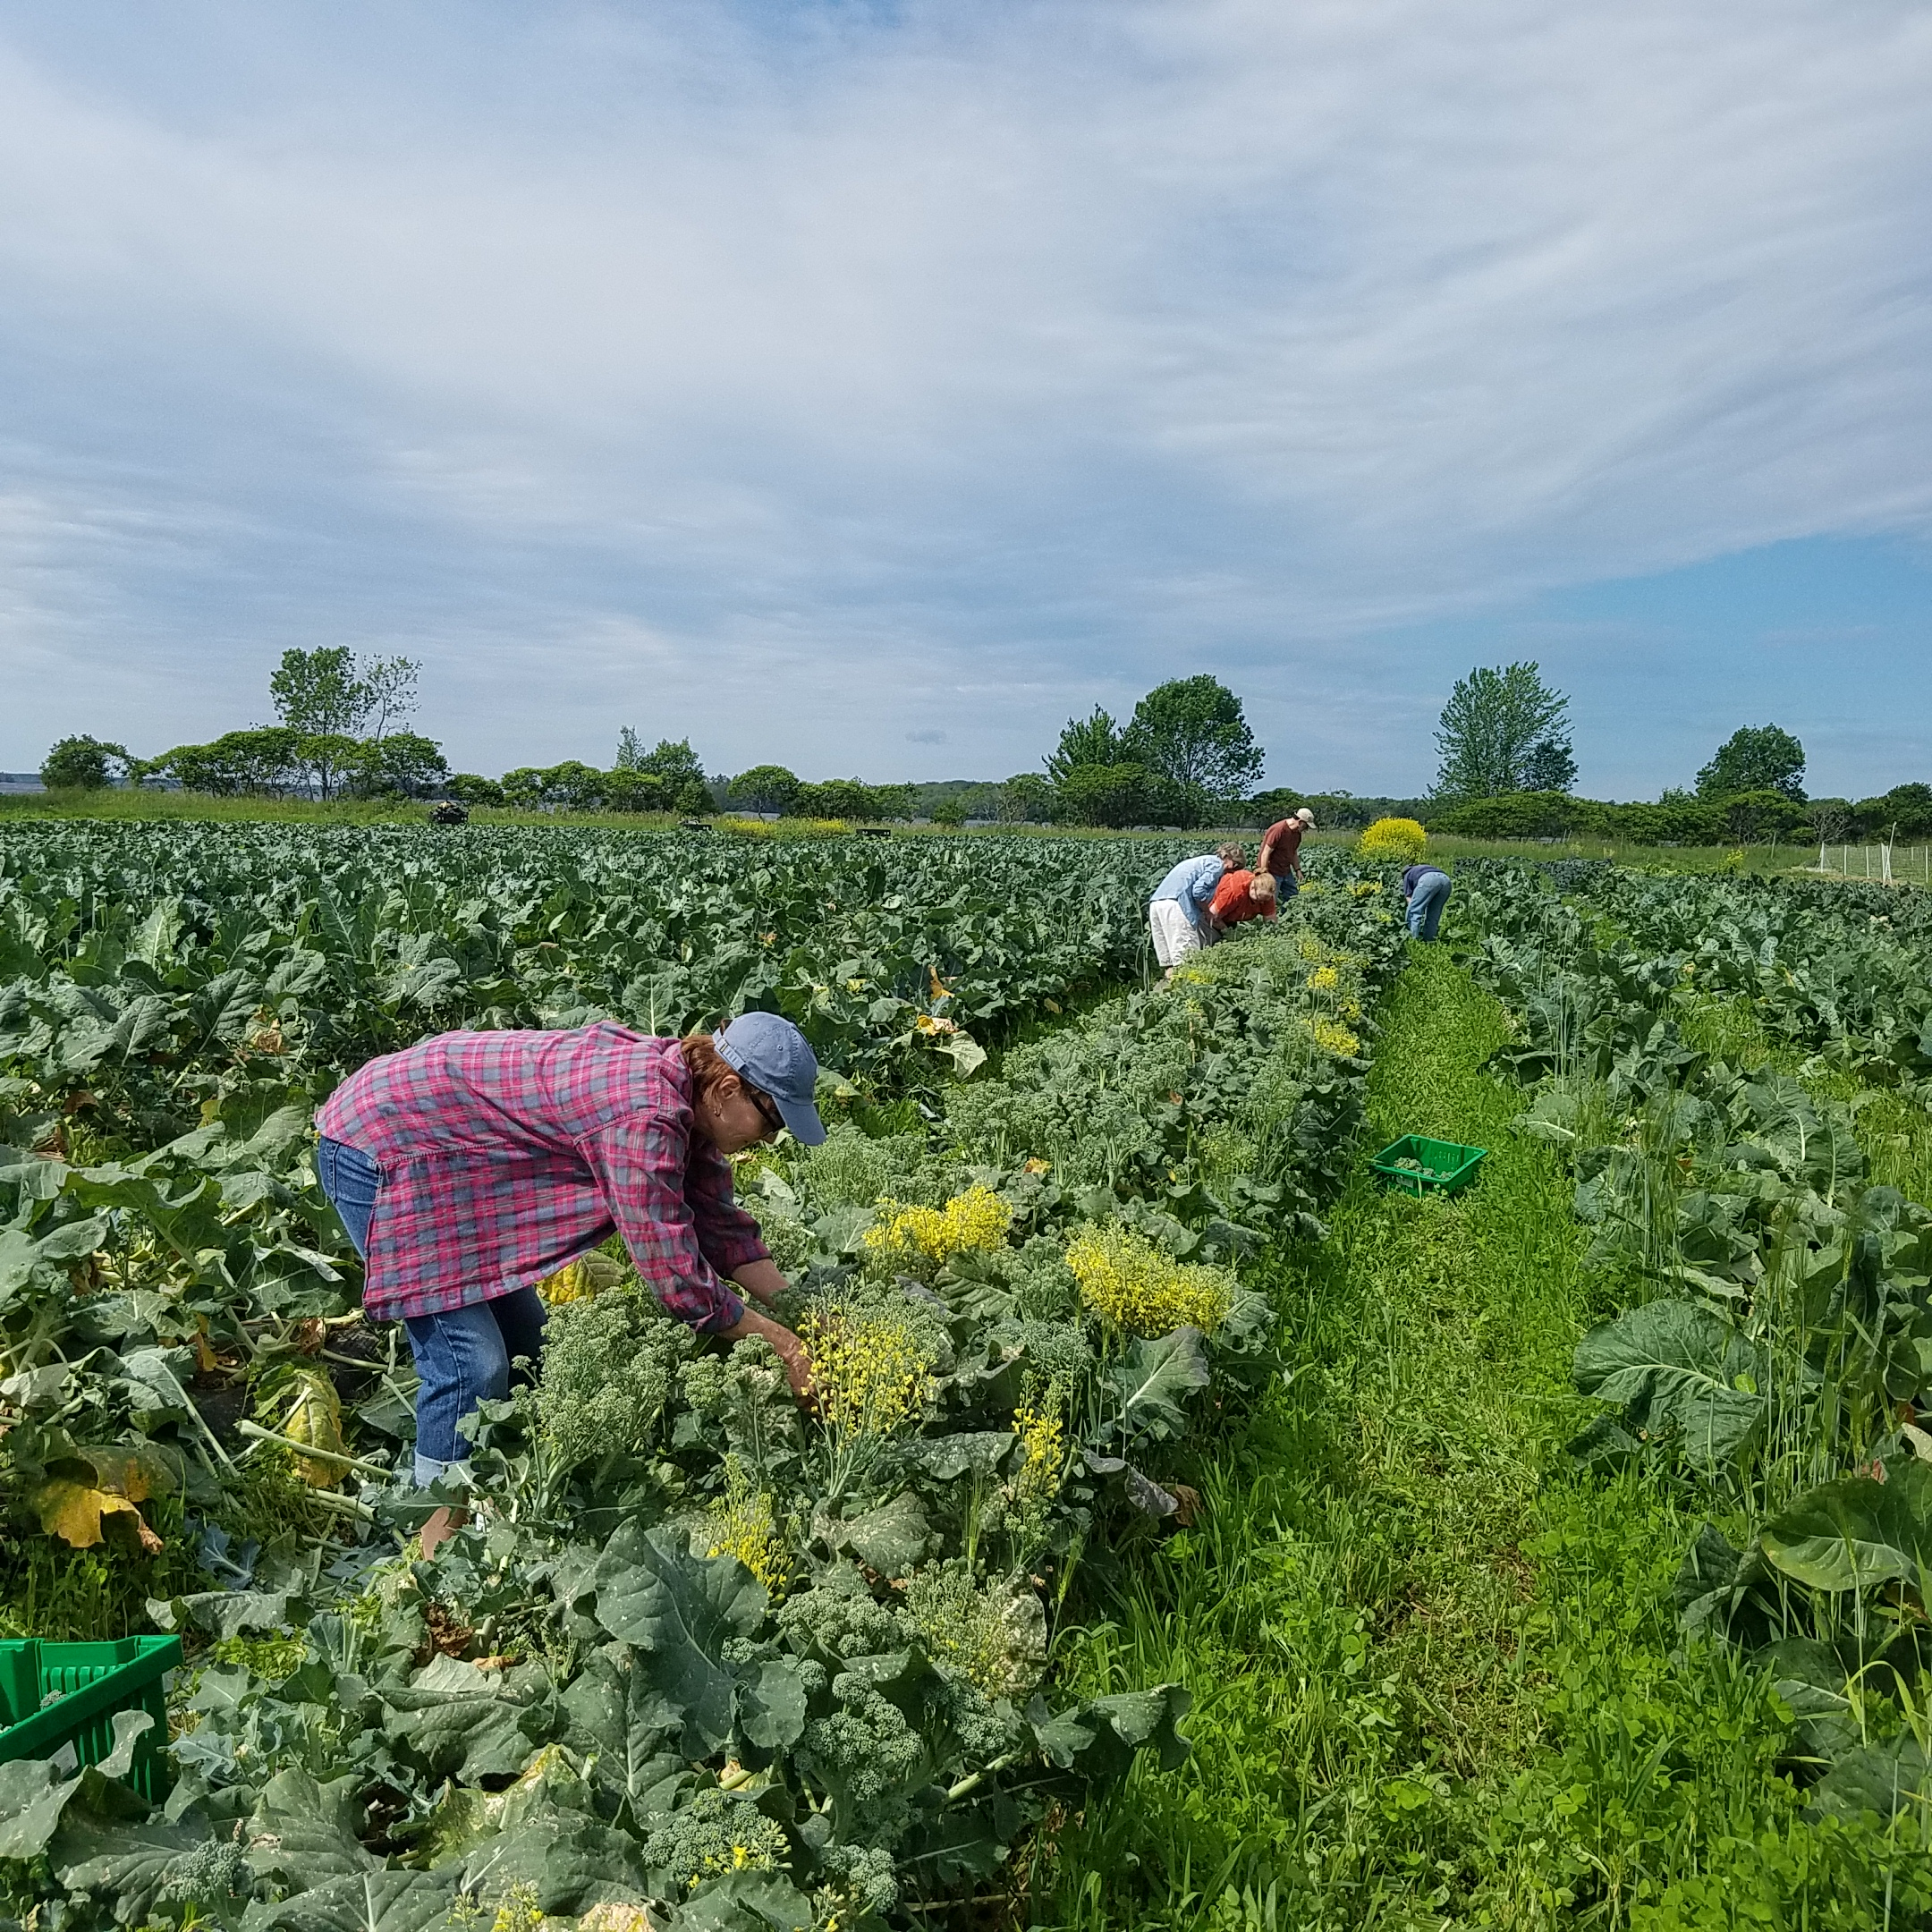 """It's wonderful to see excess produce from our farm being harvested for those in need."" -Nate Drummond, Six River Farm"